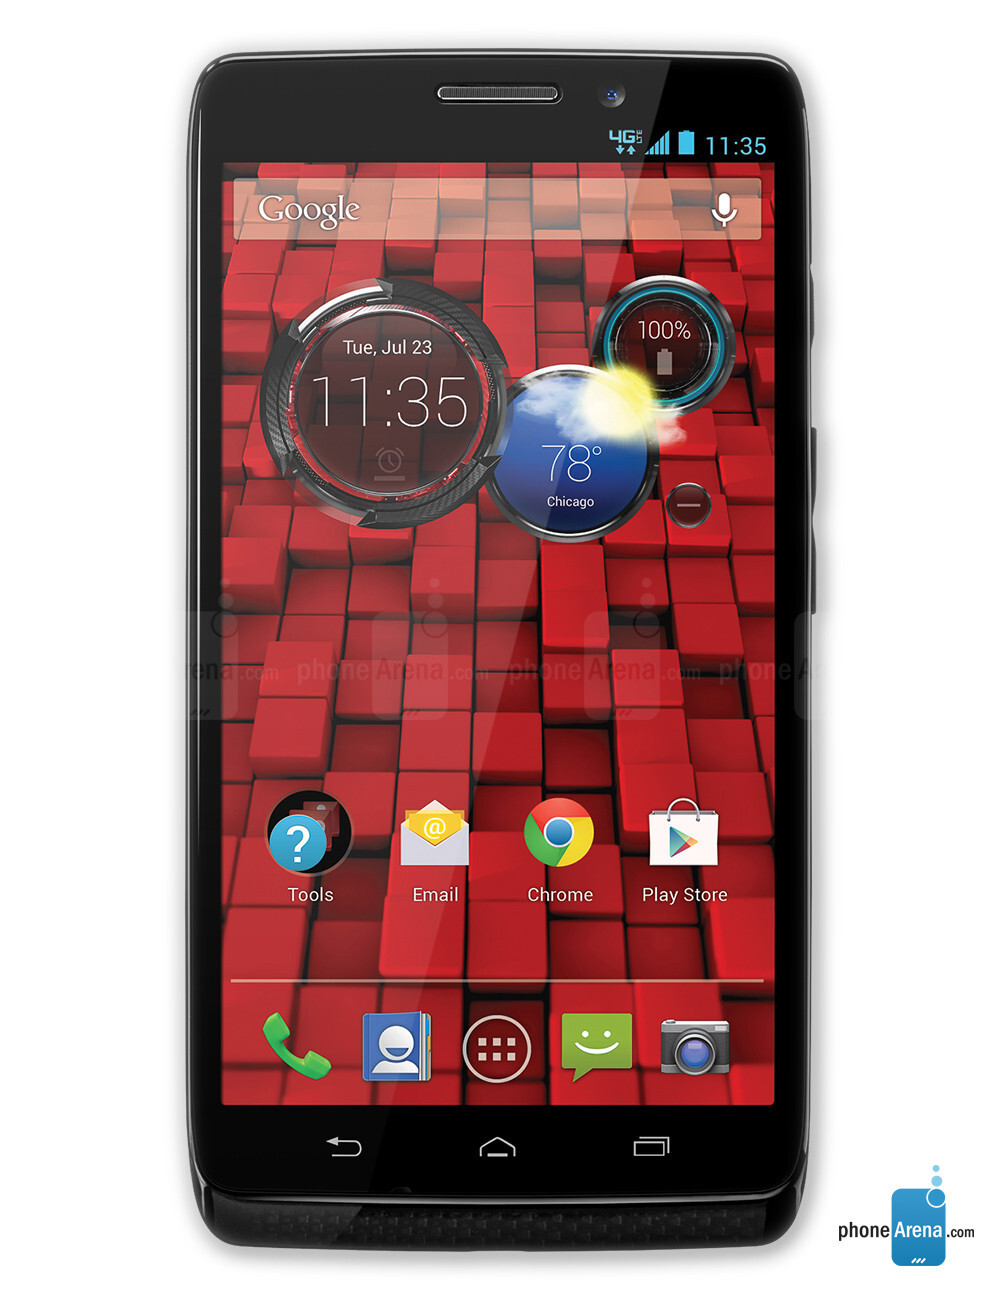 Droid maxx release date in Sydney